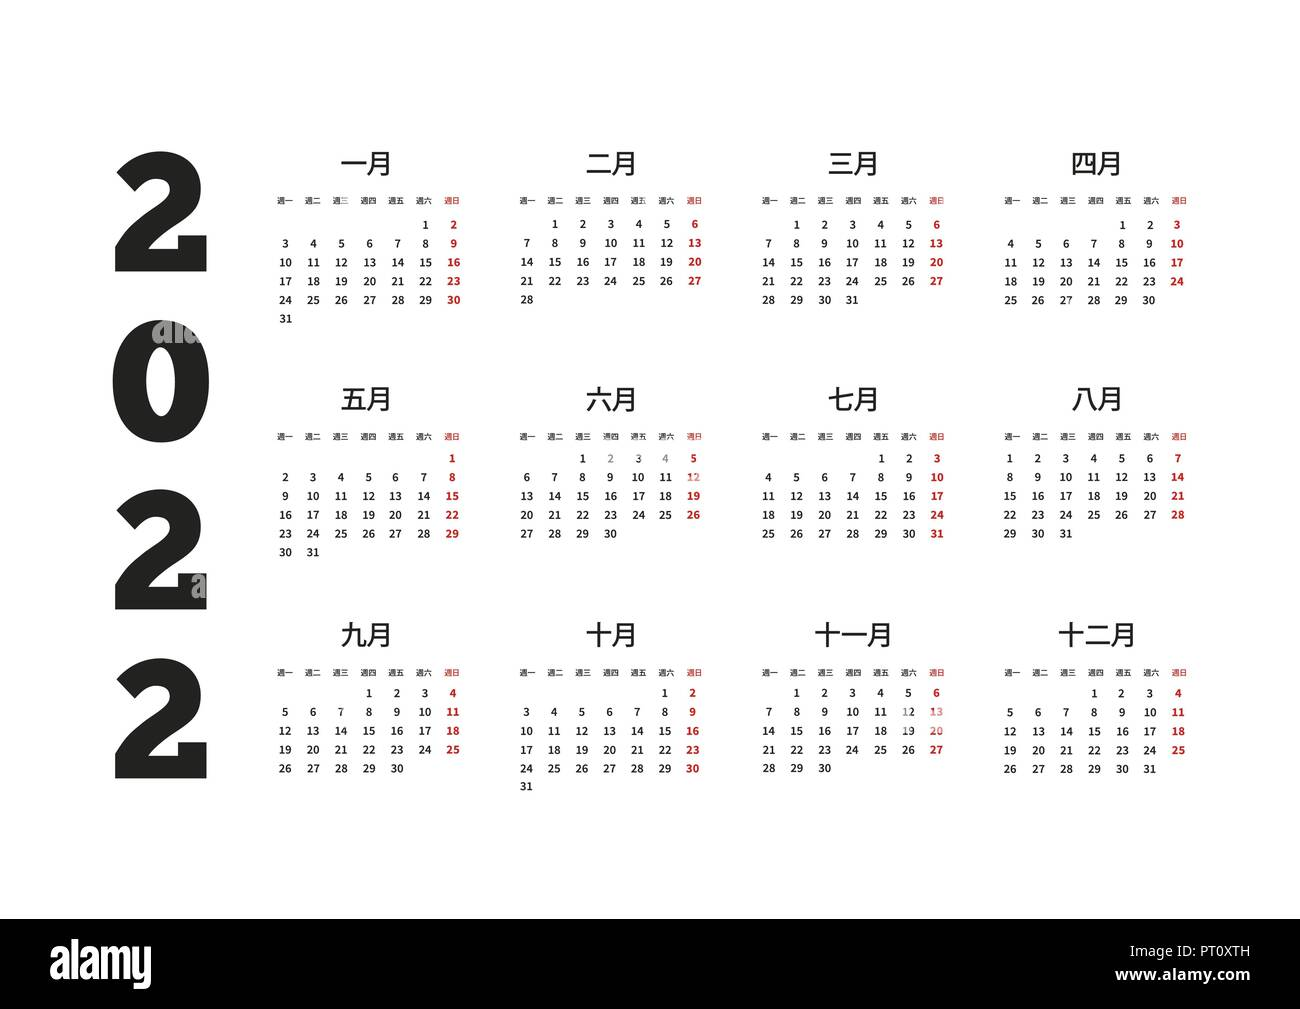 Chinese New Year Calendar 2022.2022 Year Simple Calendar On Chinese Language On White Stock Vector Image Art Alamy